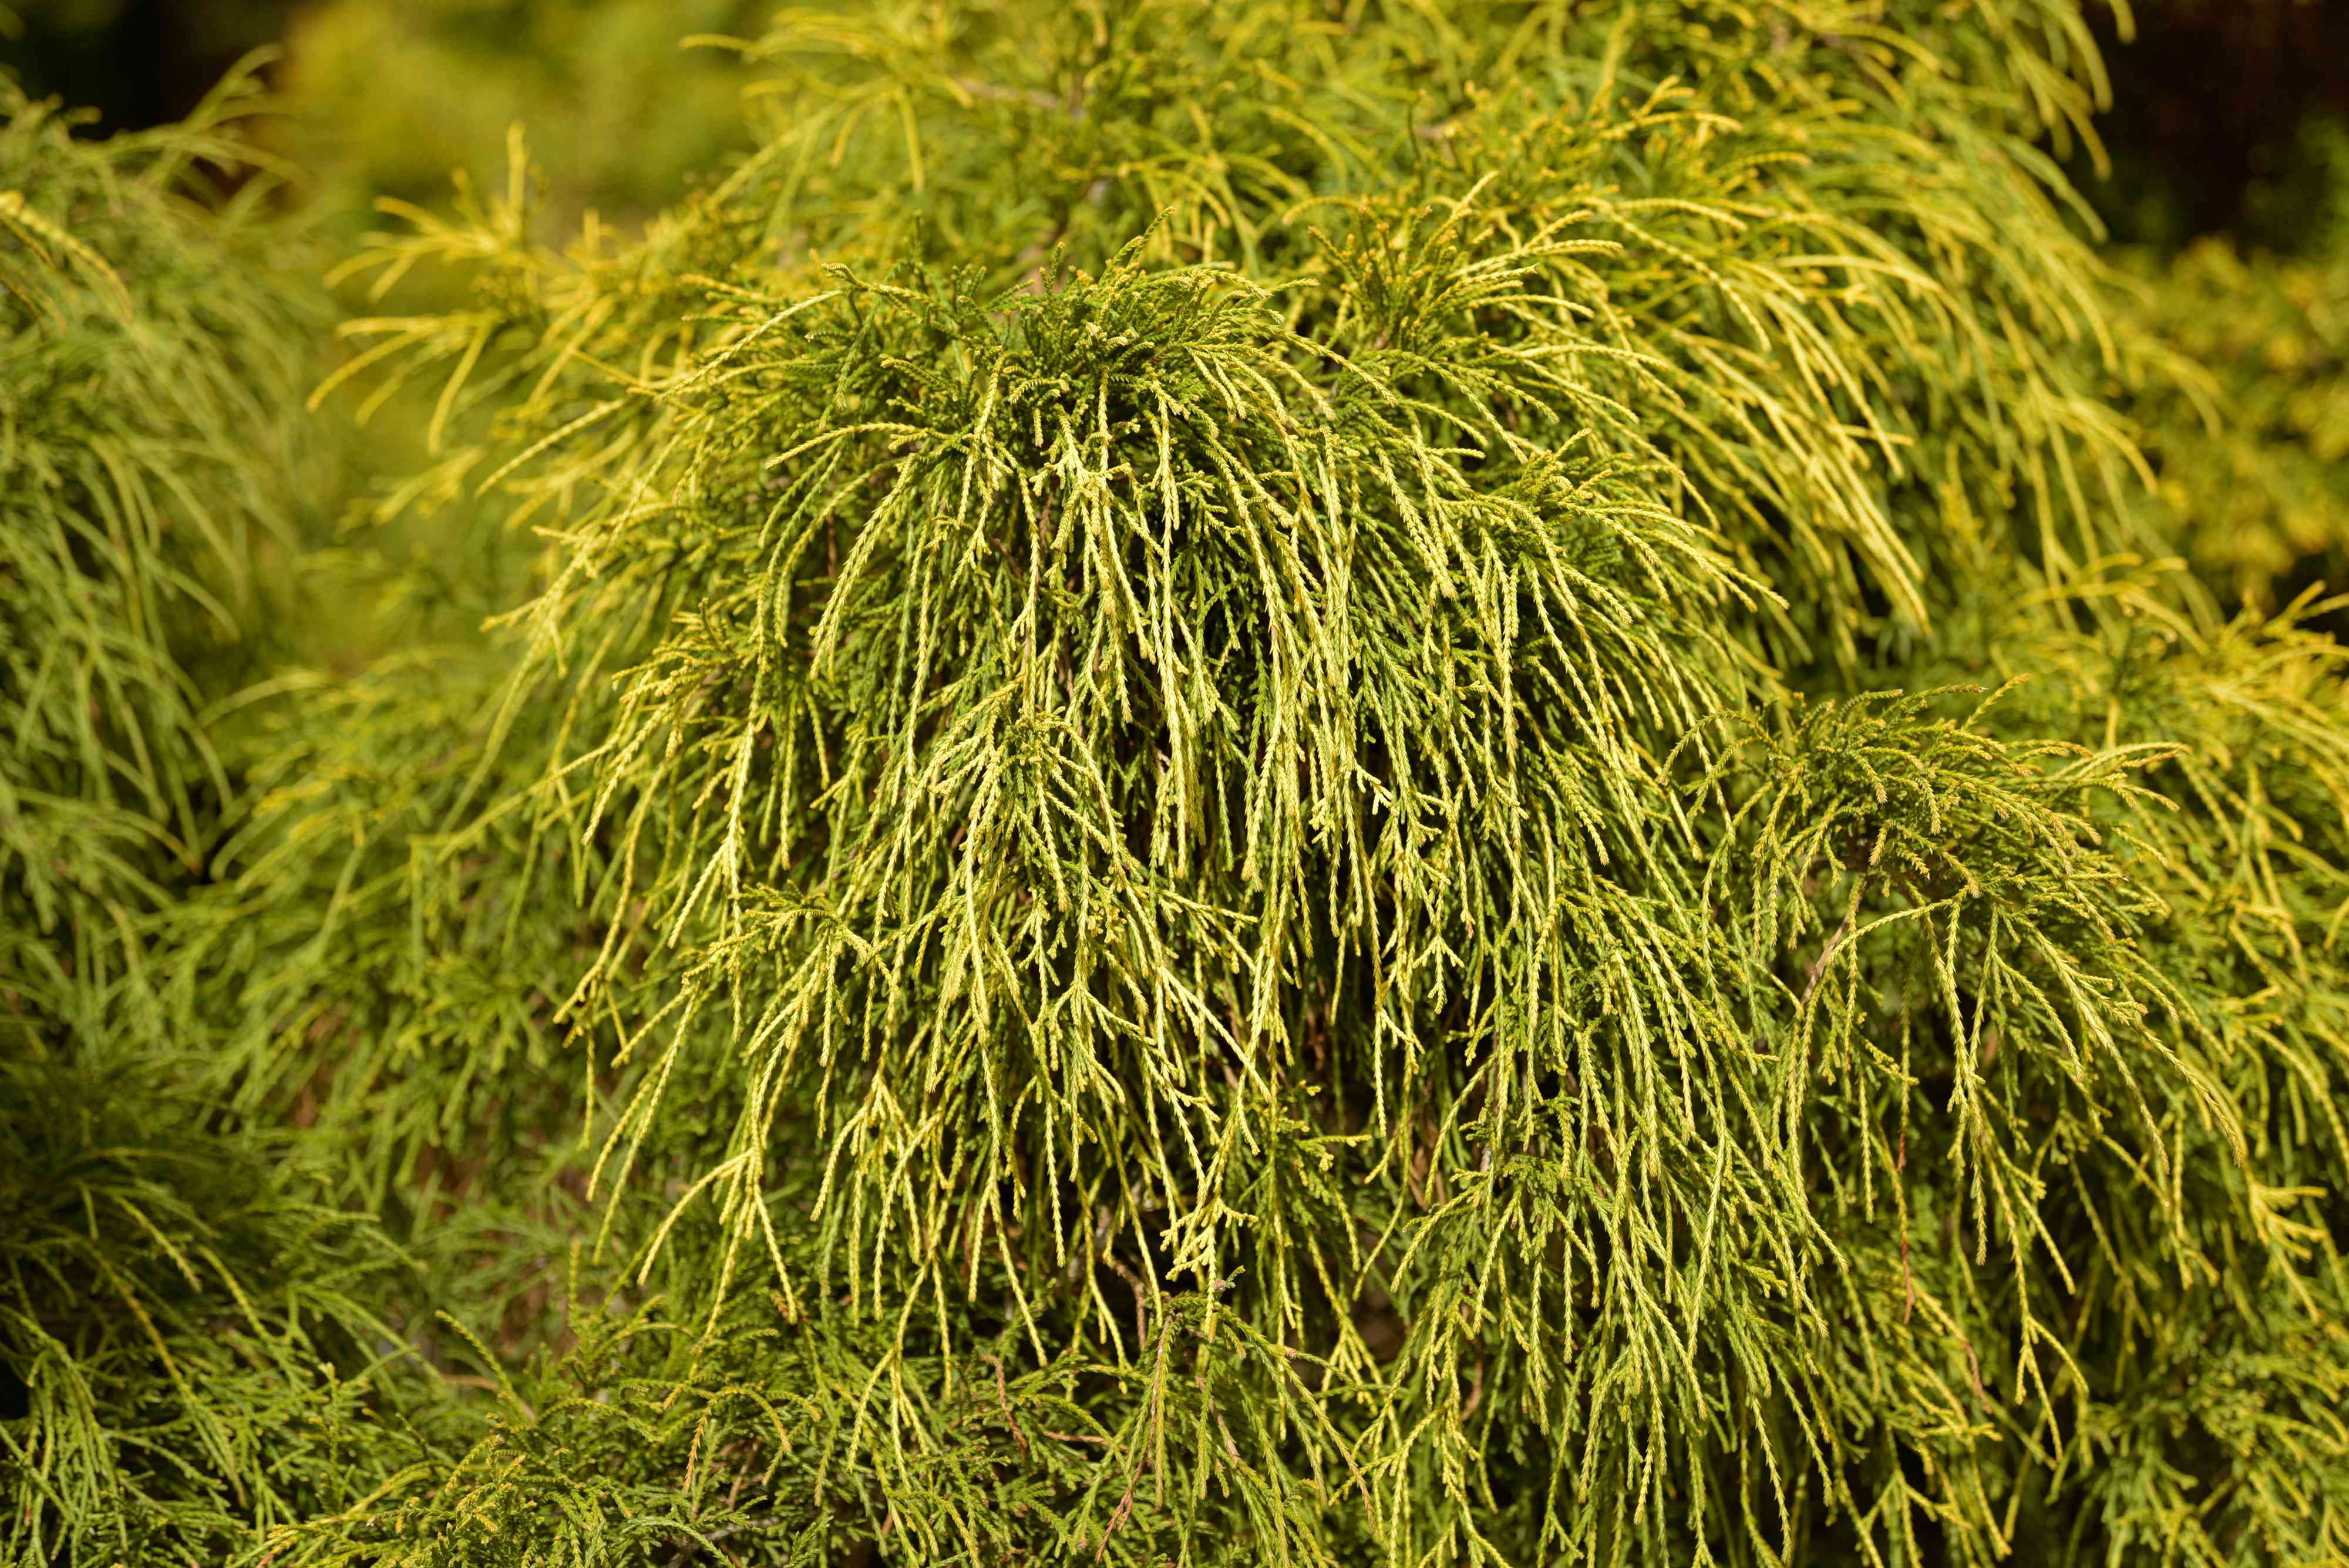 Threadleaf false cypress shrub with string-like yellow and green foliage hanging in sunlight